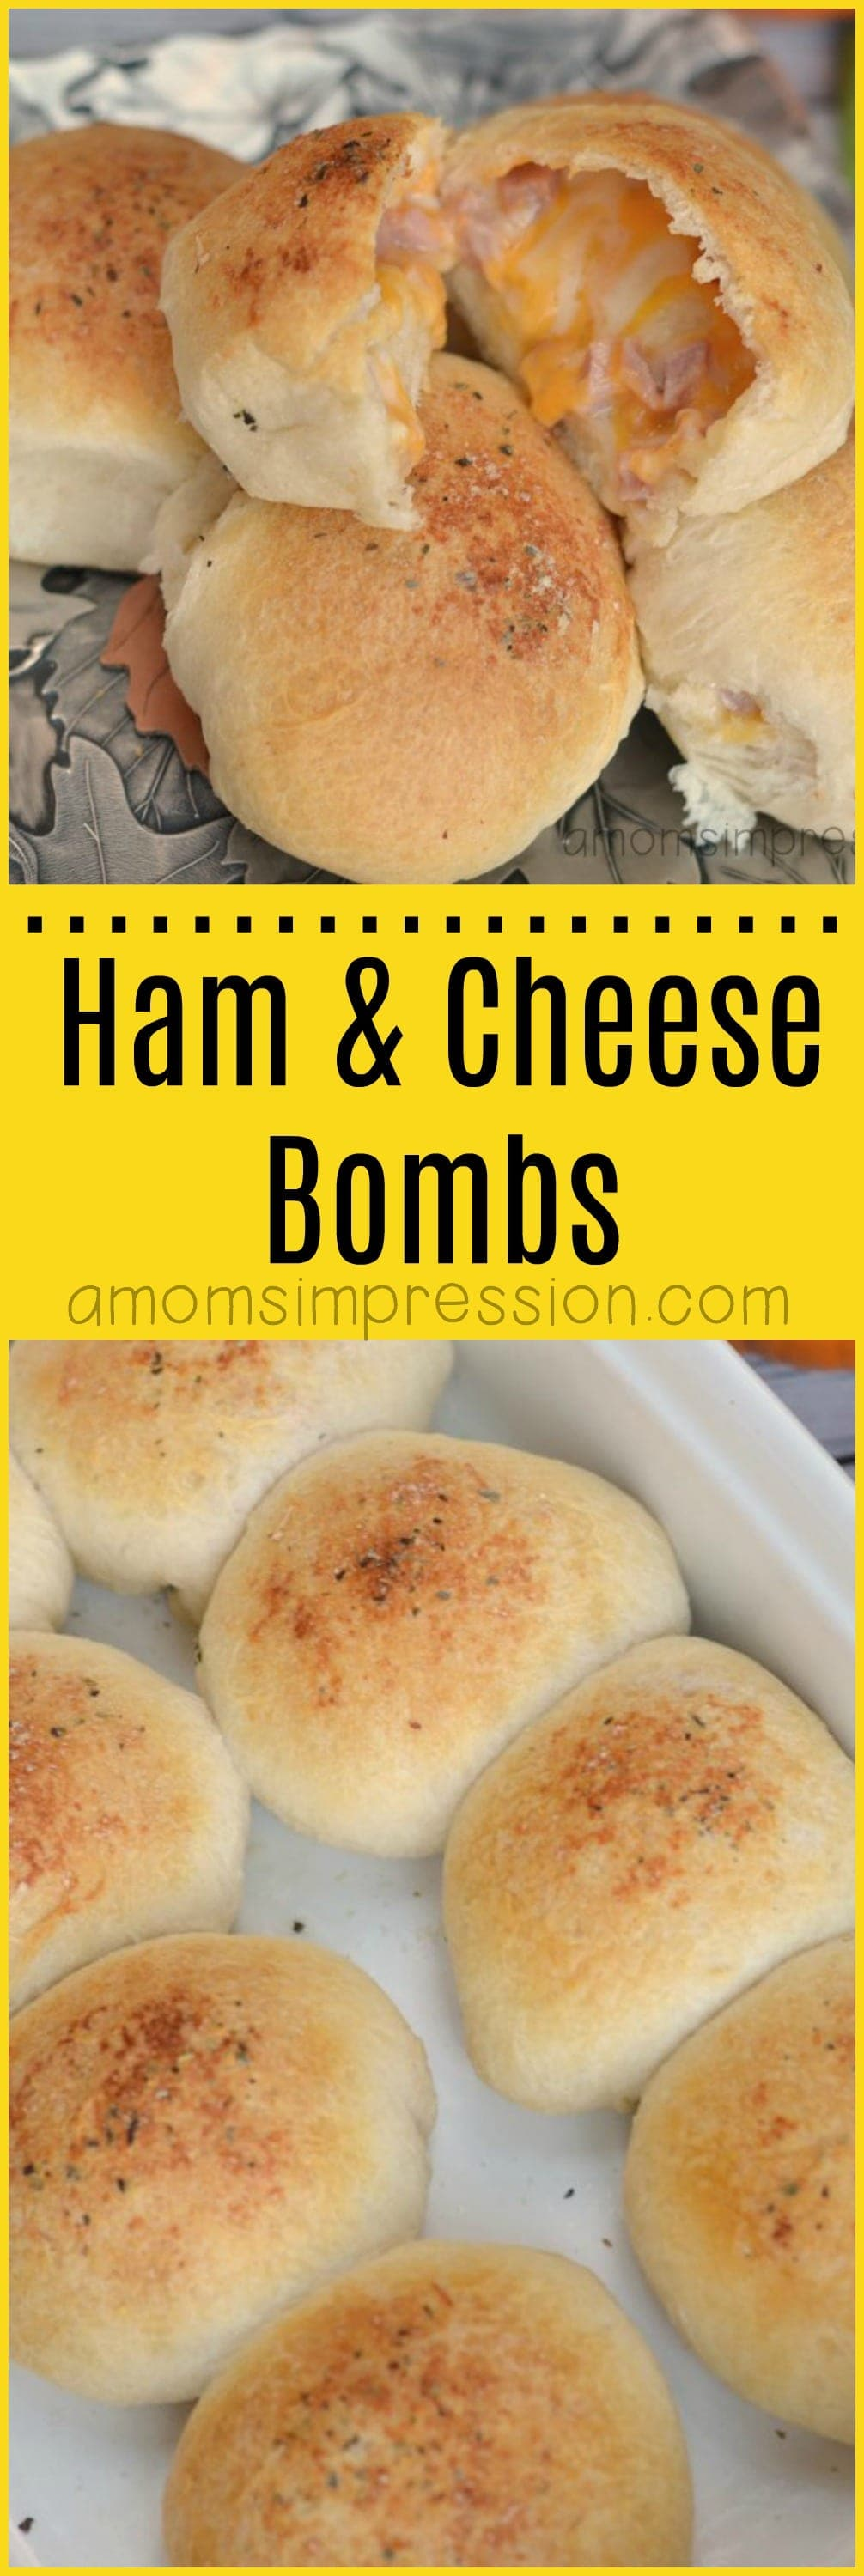 Looking for an alternative to ham and cheese sliders? These ham and cheese bombs recipes are delicious and perfect as an appetizer for your next party. They are simple and easy to bake in the oven and everyone loves them.